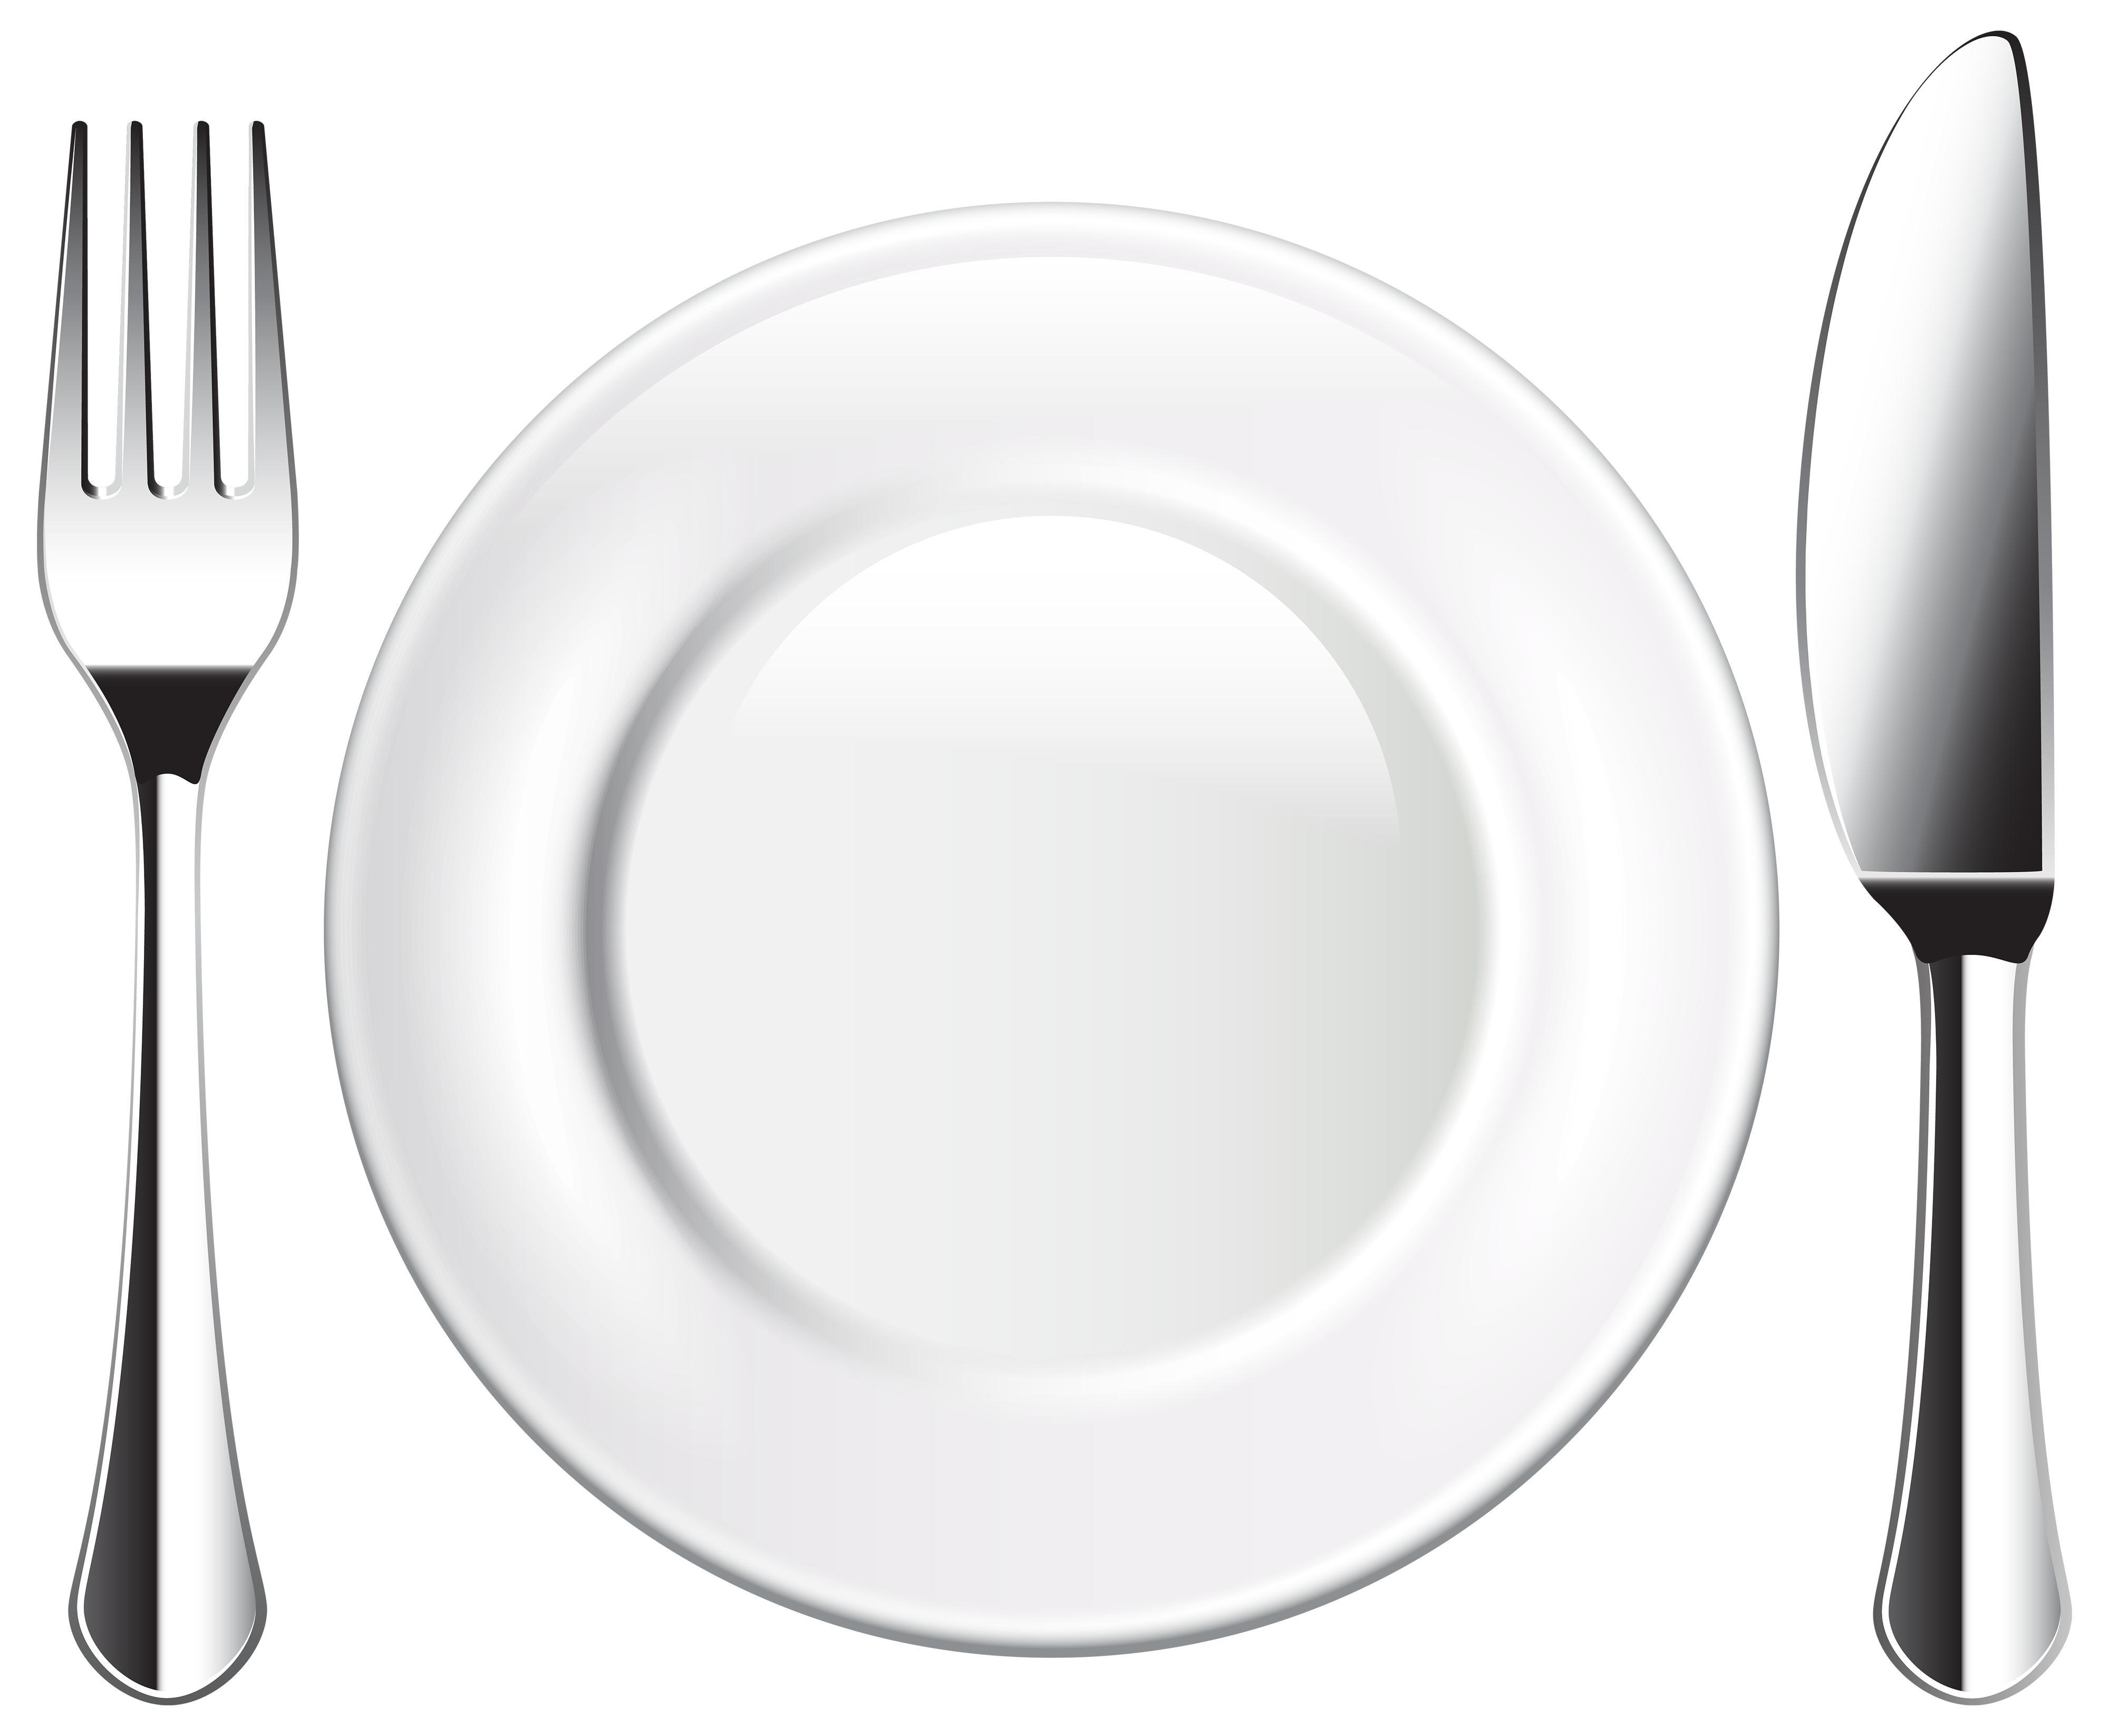 Plate Knife and Fork PNG Clipart.